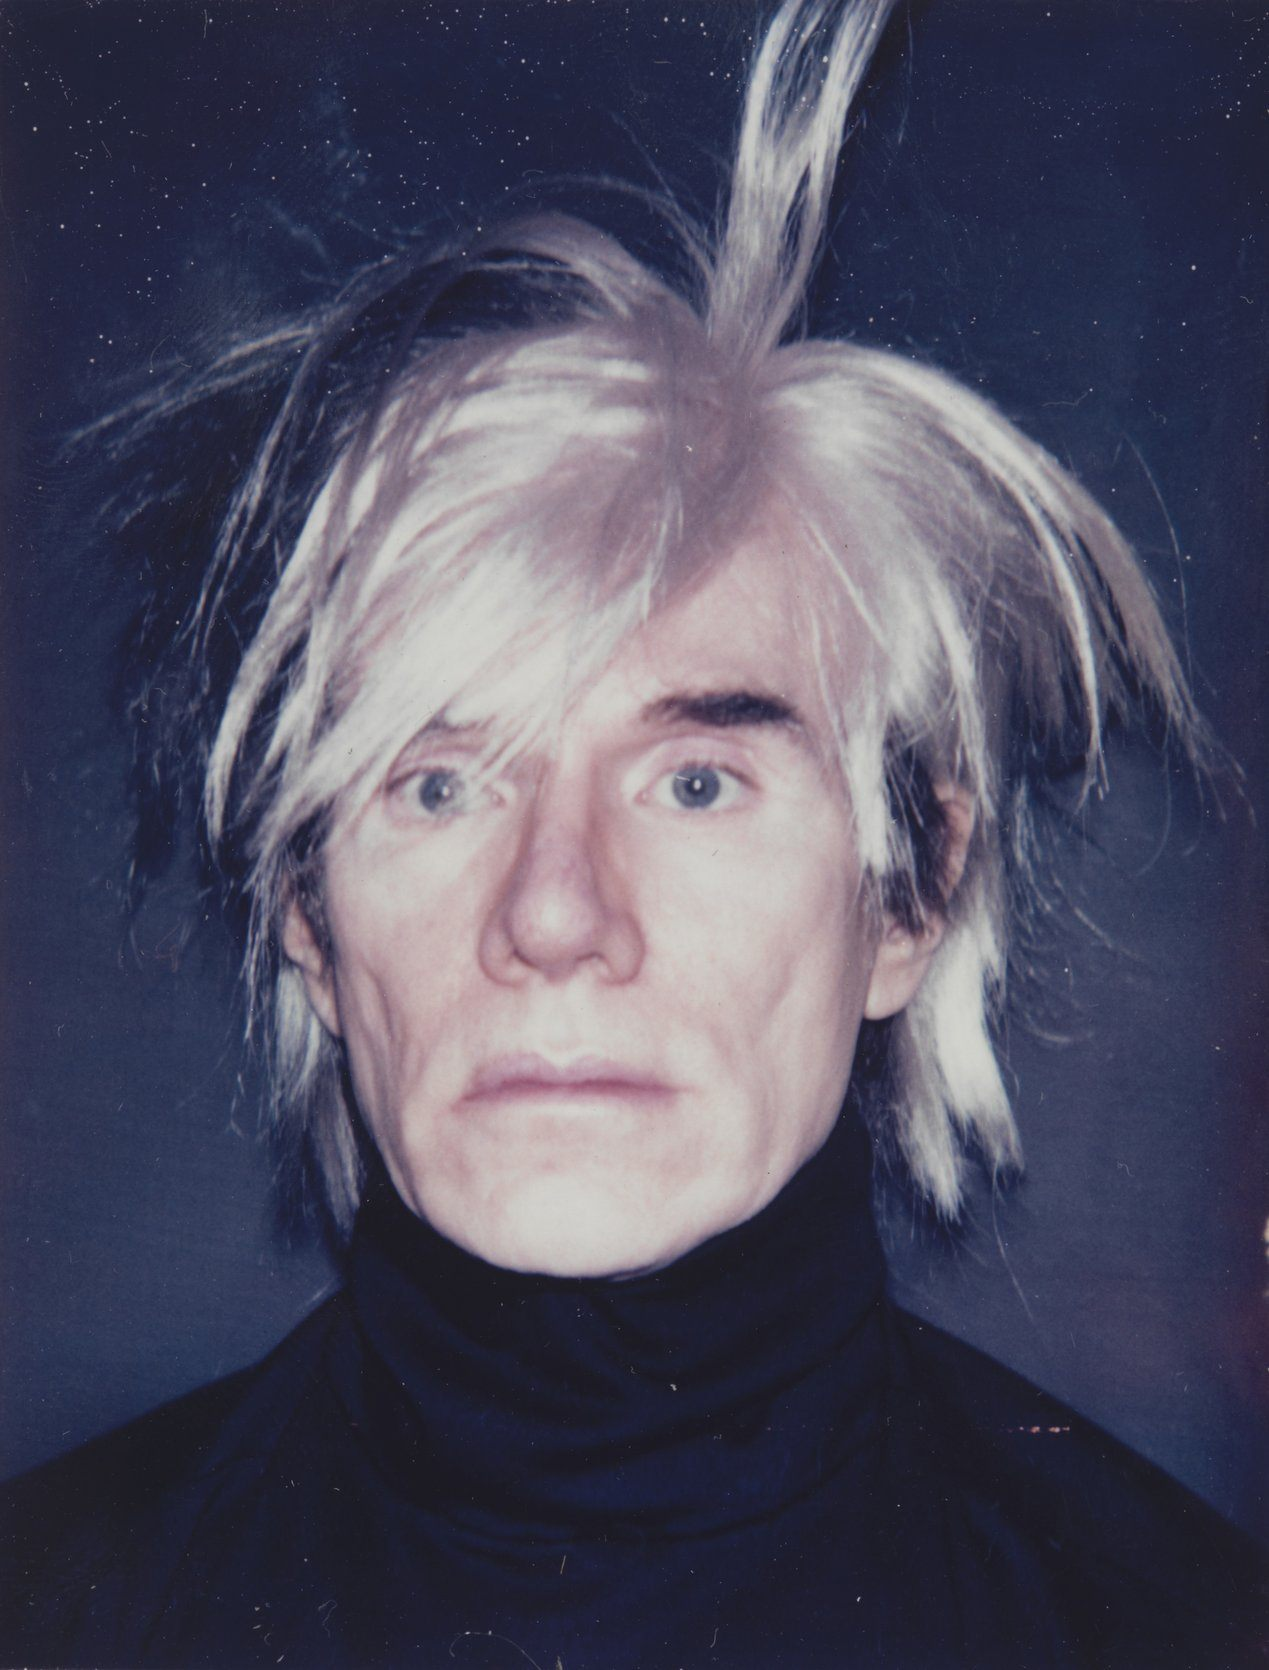 Andy Warhol, Autoportrait avec perruque hérissée, 1986 Polaroid et peinture Artist Rooms, National Galleries of Scotland and Tate © 2015 The Andy Warhol Foundation for the Visual Arts, Inc. / Artists Rights Society (ARS), New York